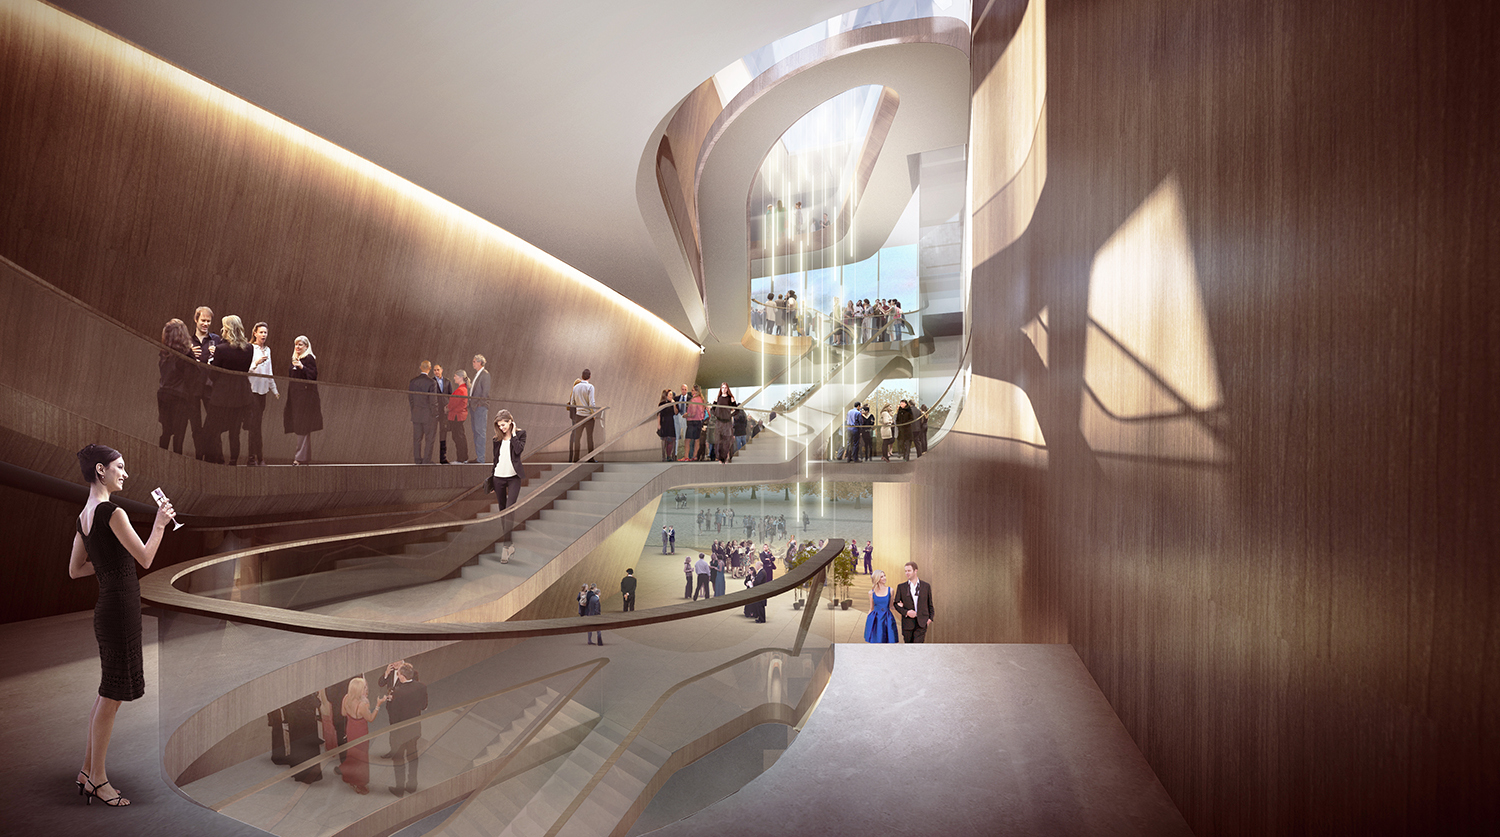 Gallery of unstudio's den bosch theatre design selected through ...